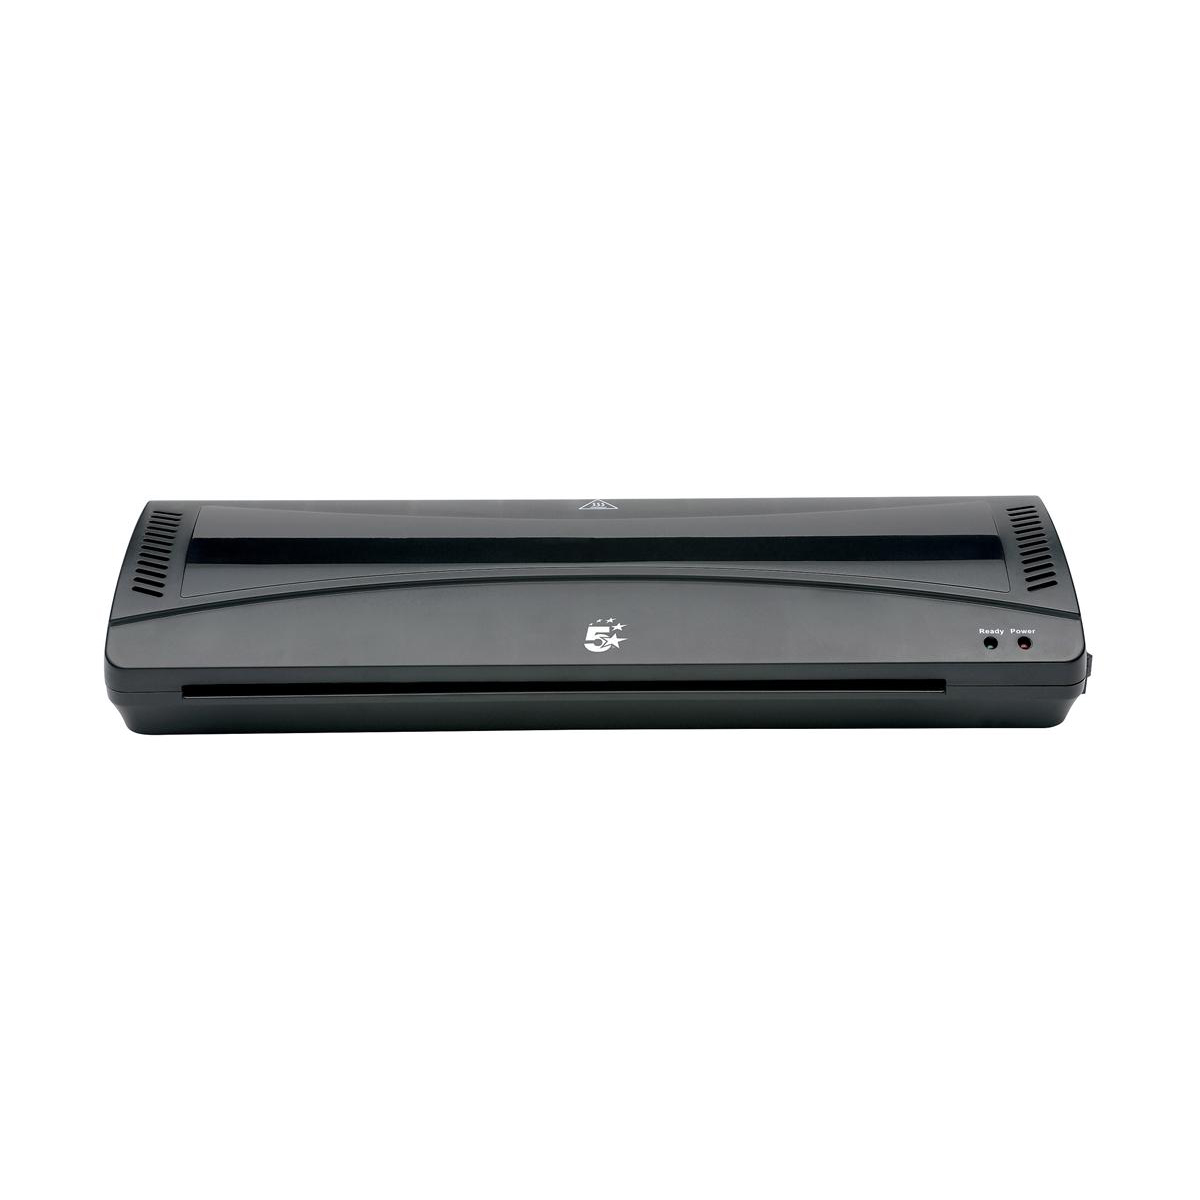 Laminators 5 Star Office Hot and Cold A3 Laminator Up to 2x100micron Pouches